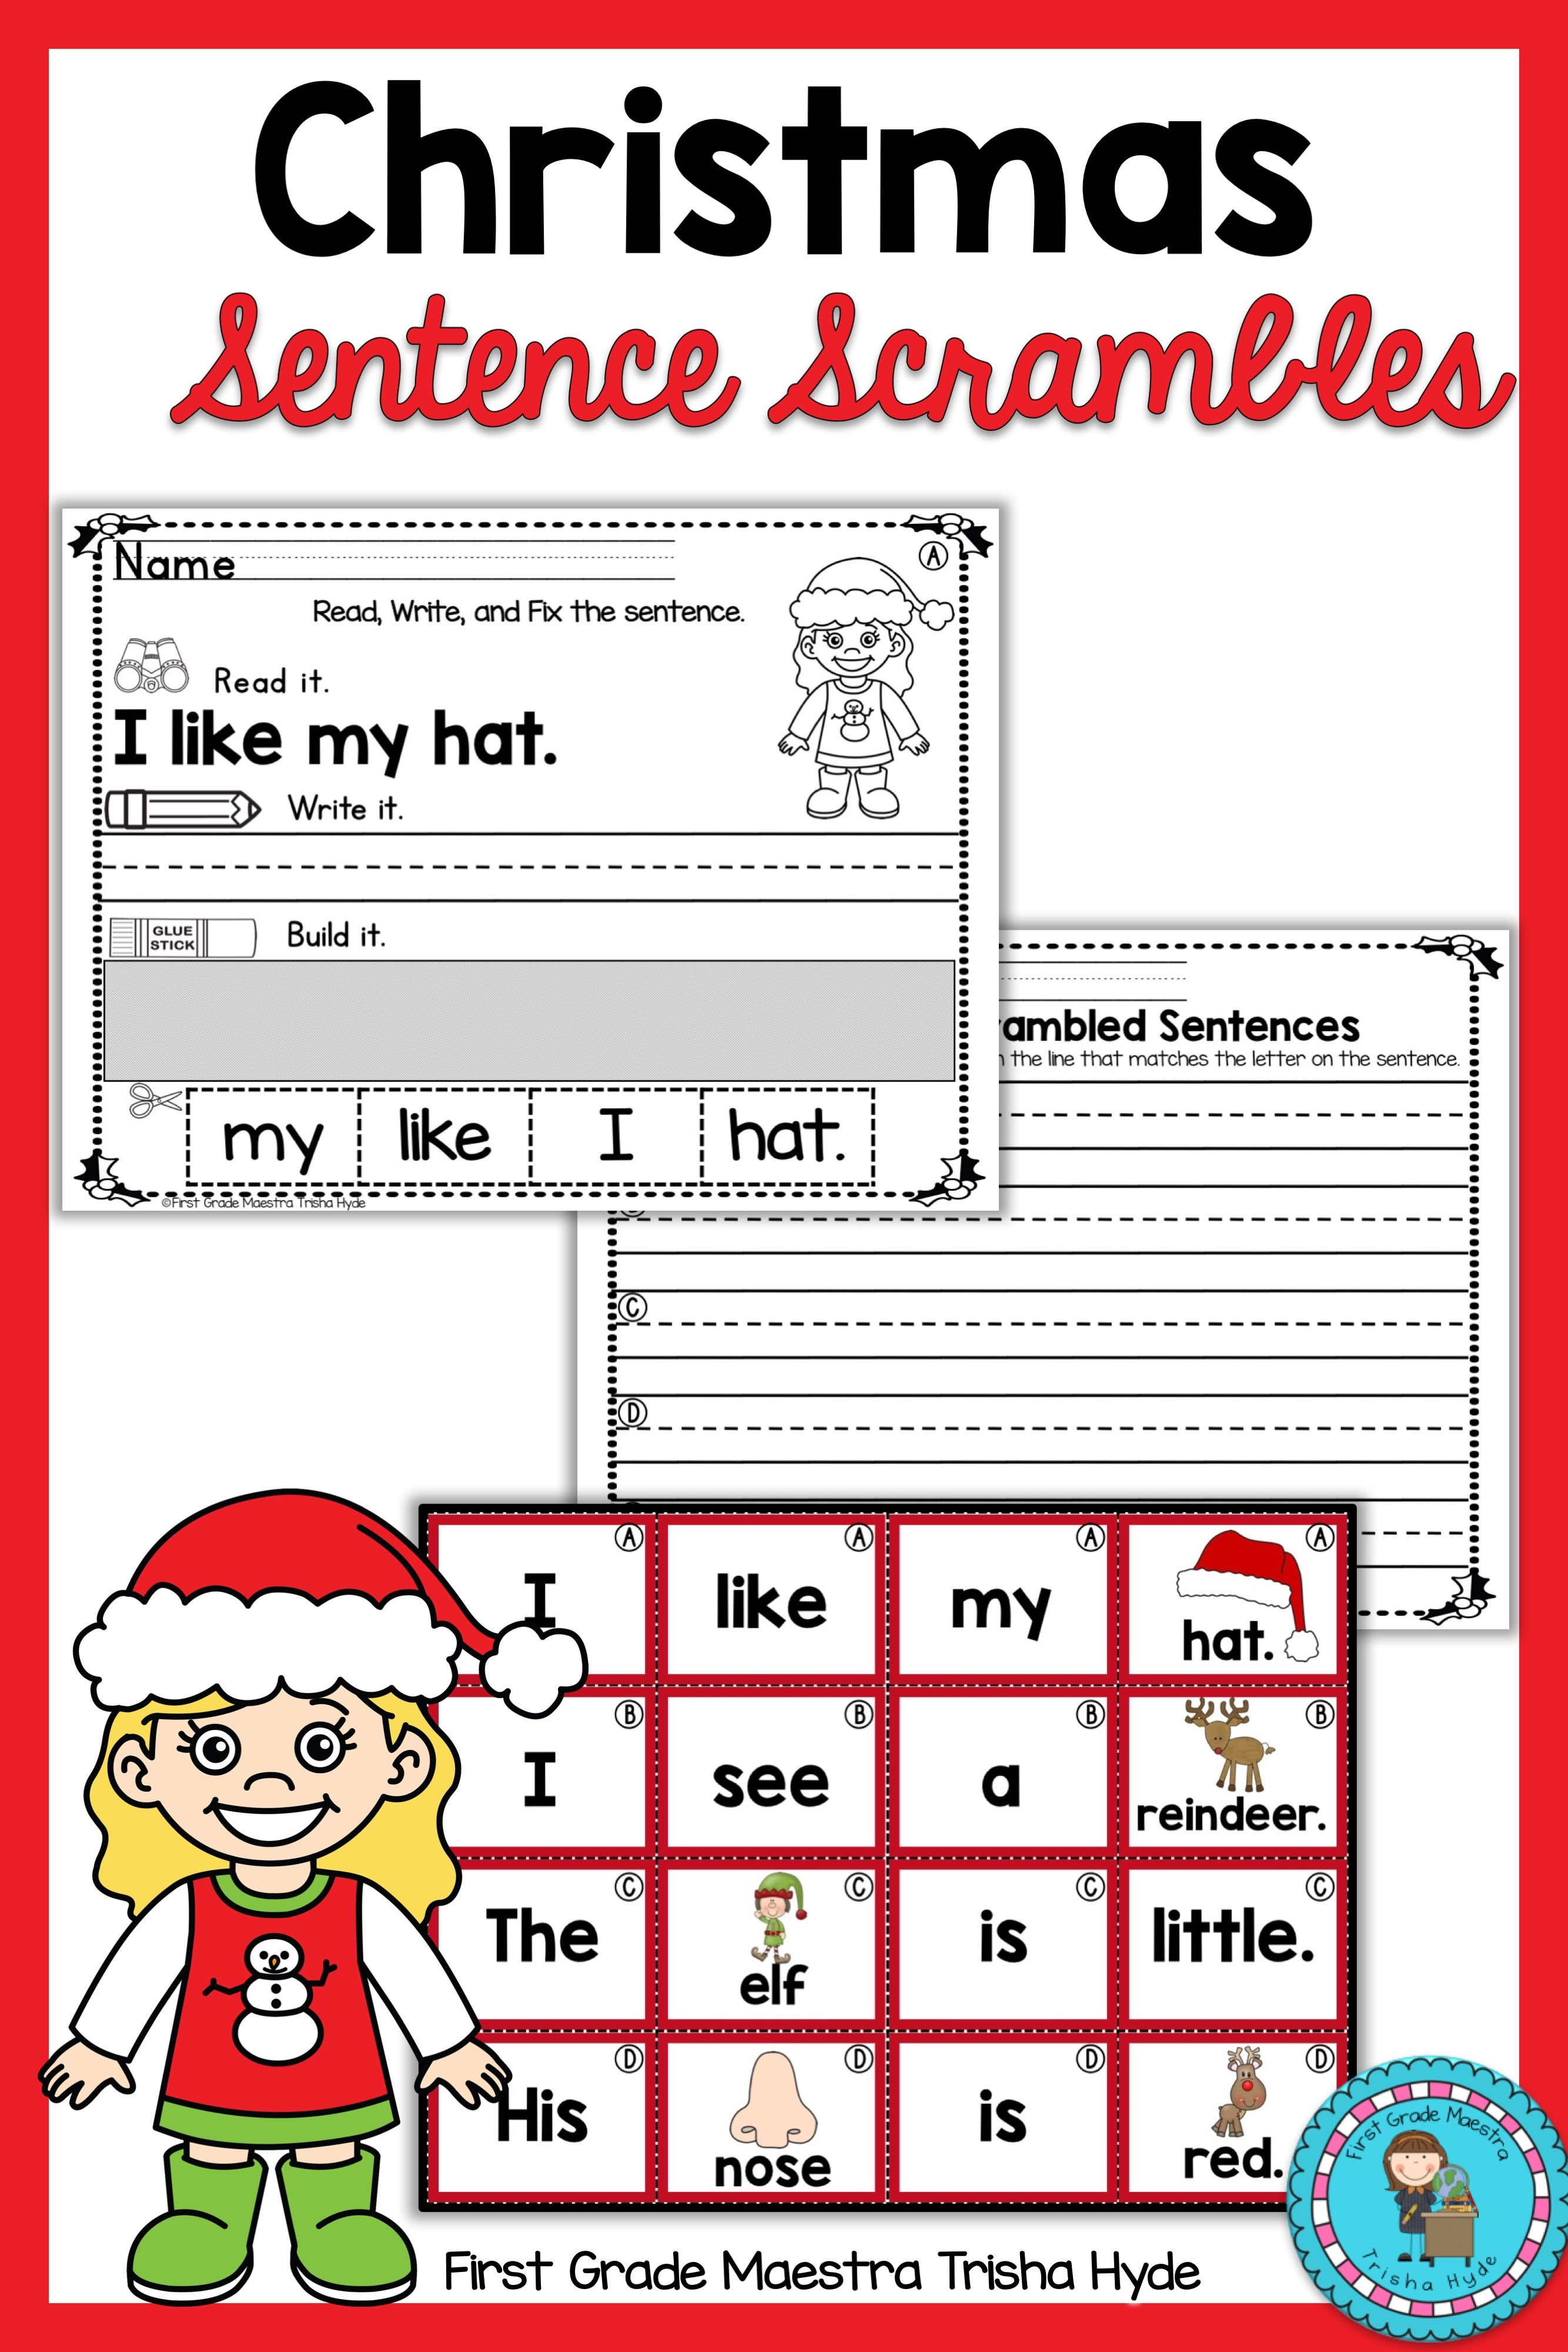 Christmas Sentence Scrambles With Images